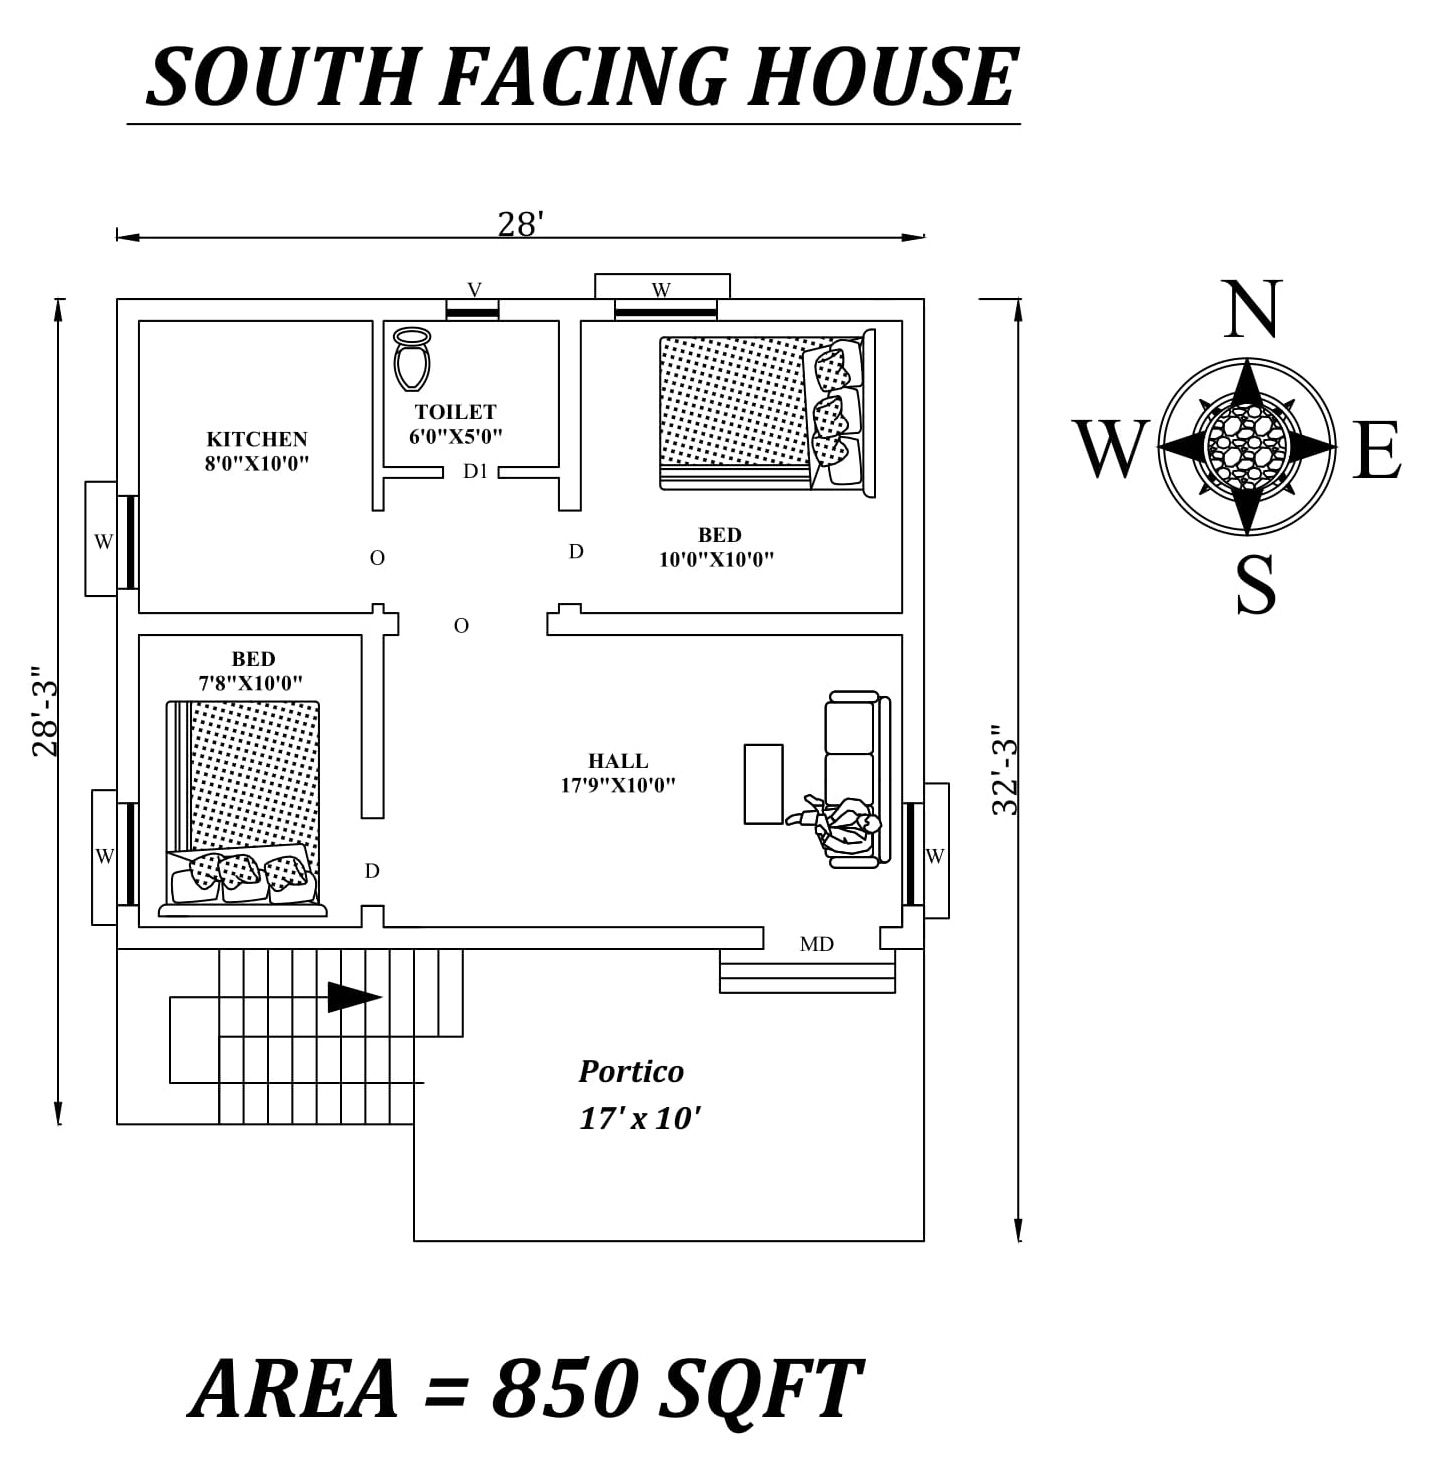 28 X28 2bhk Furnished Awesome South Facing House Plan As Per Vastu Shastra In 2020 South Facing House 2bhk House Plan Little House Plans